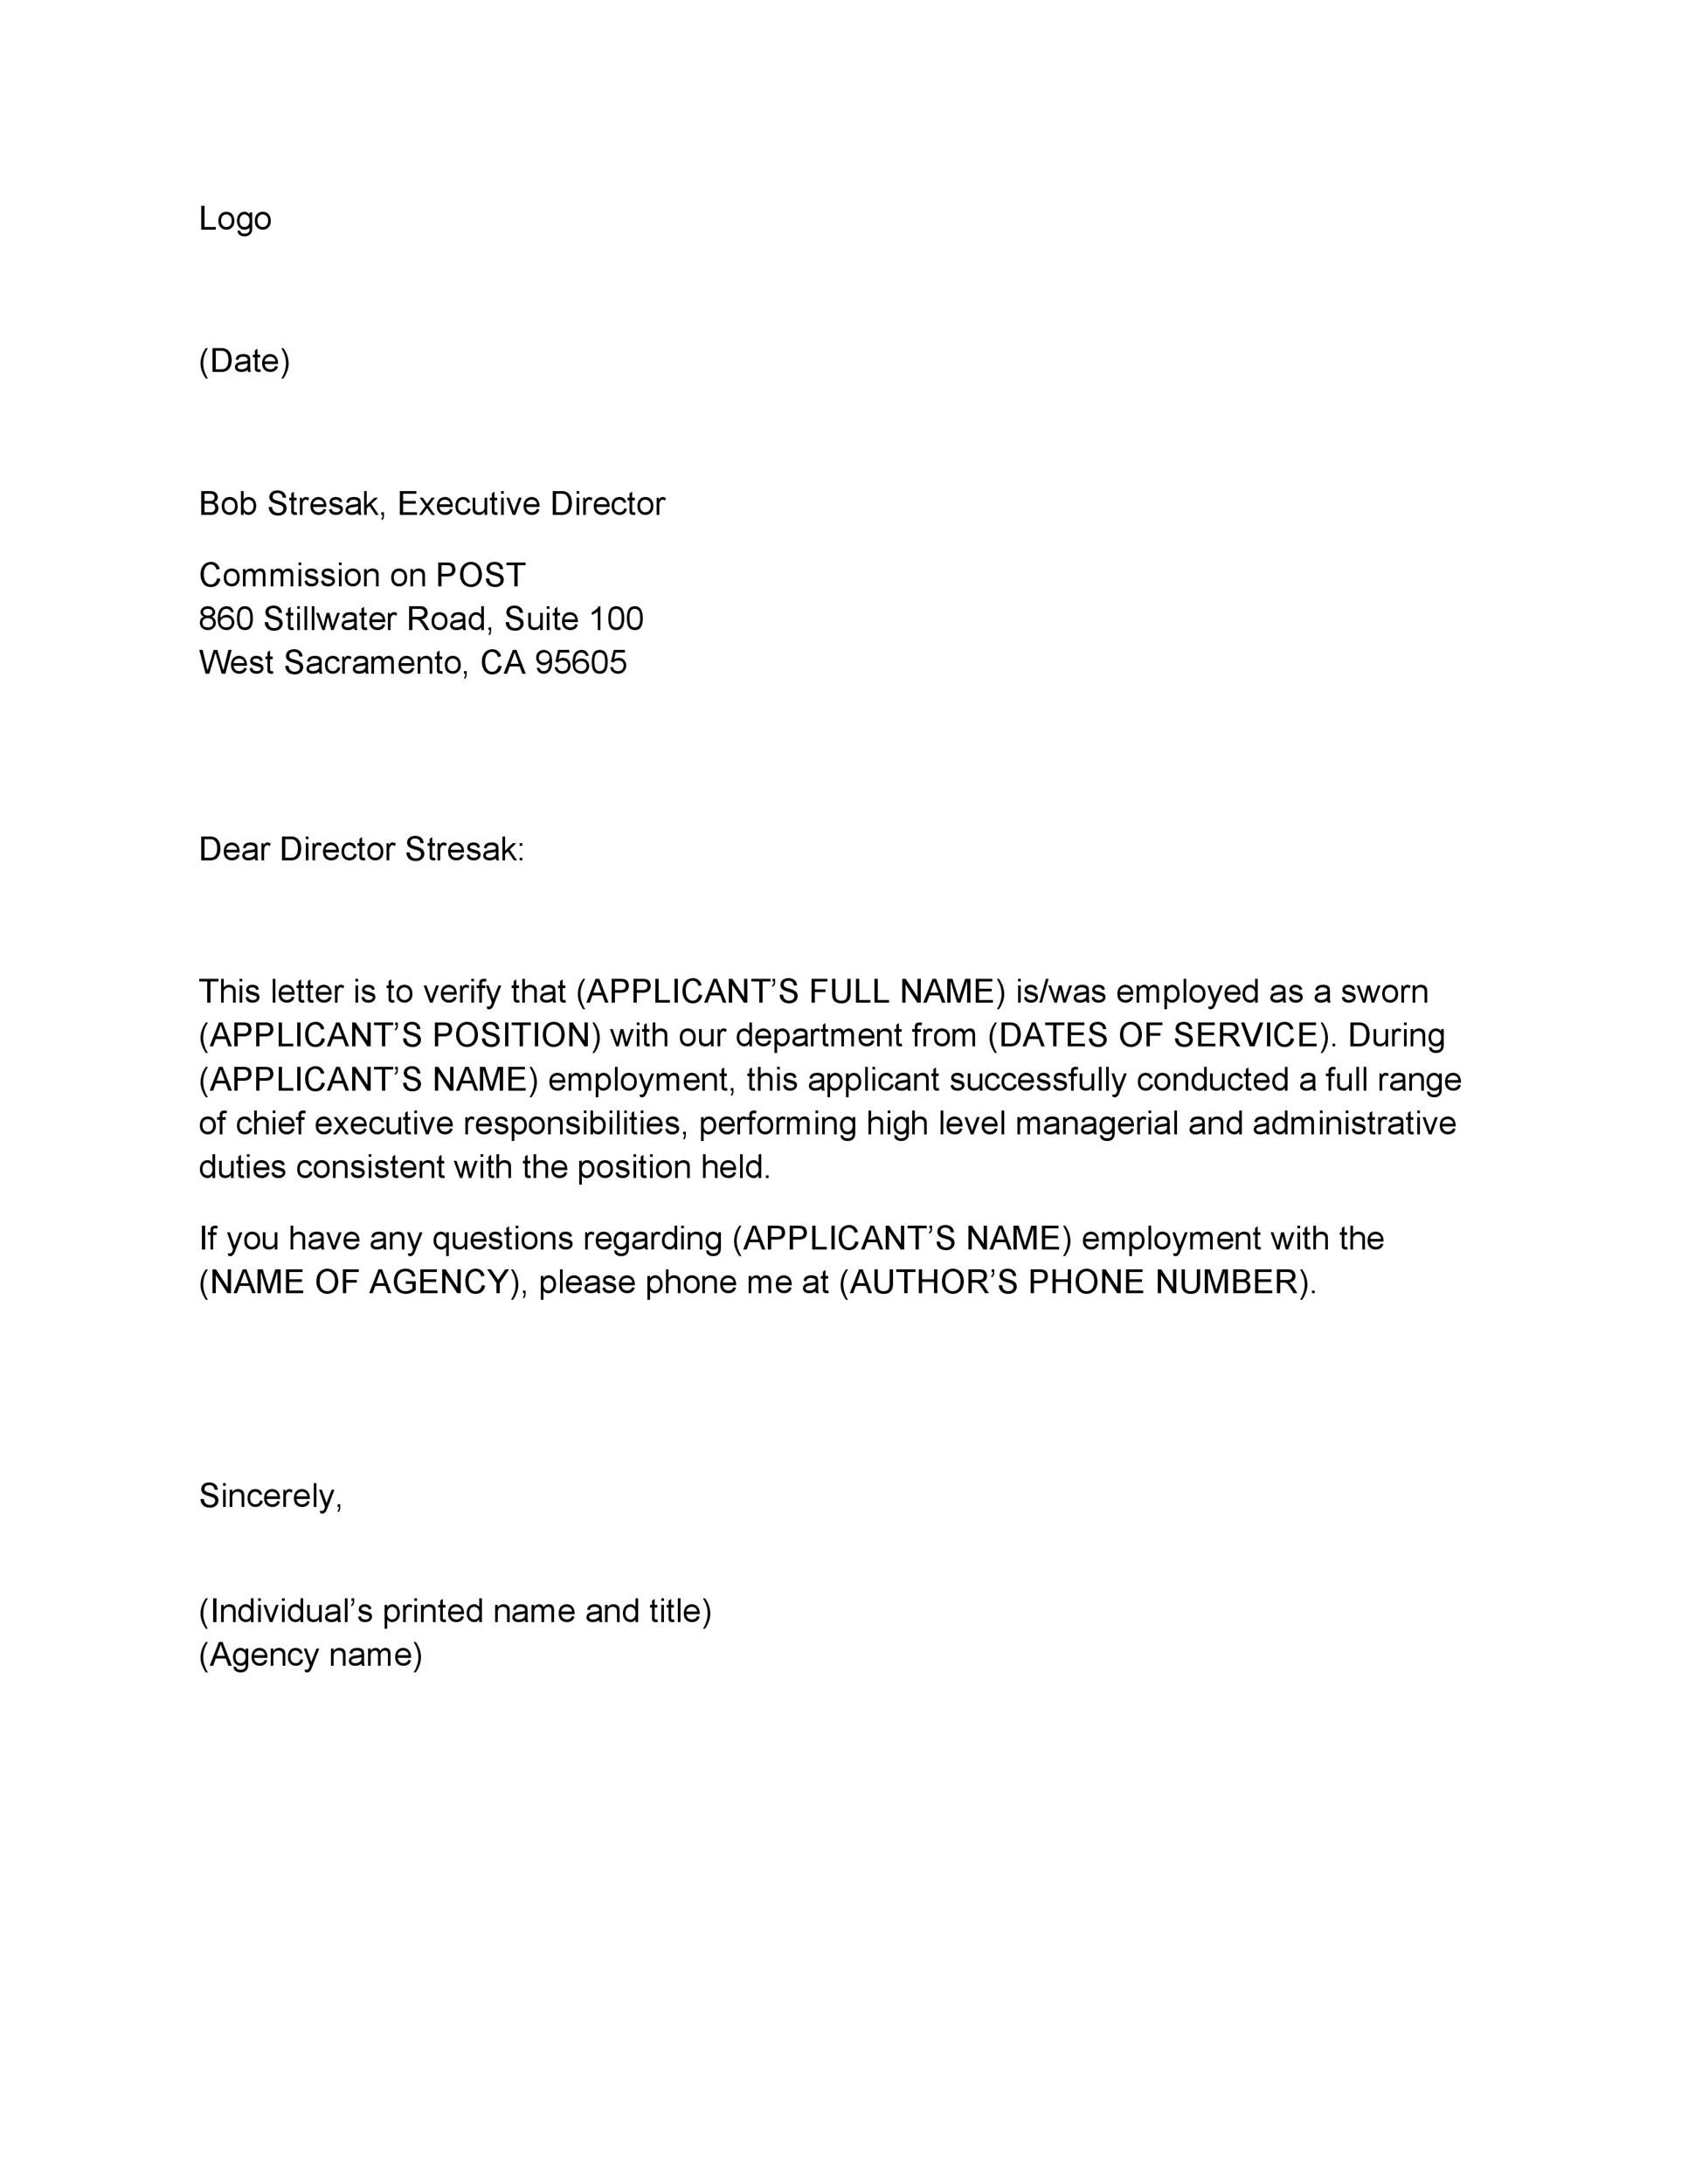 Standard Employment Verification Letter Sample  Cover Letter